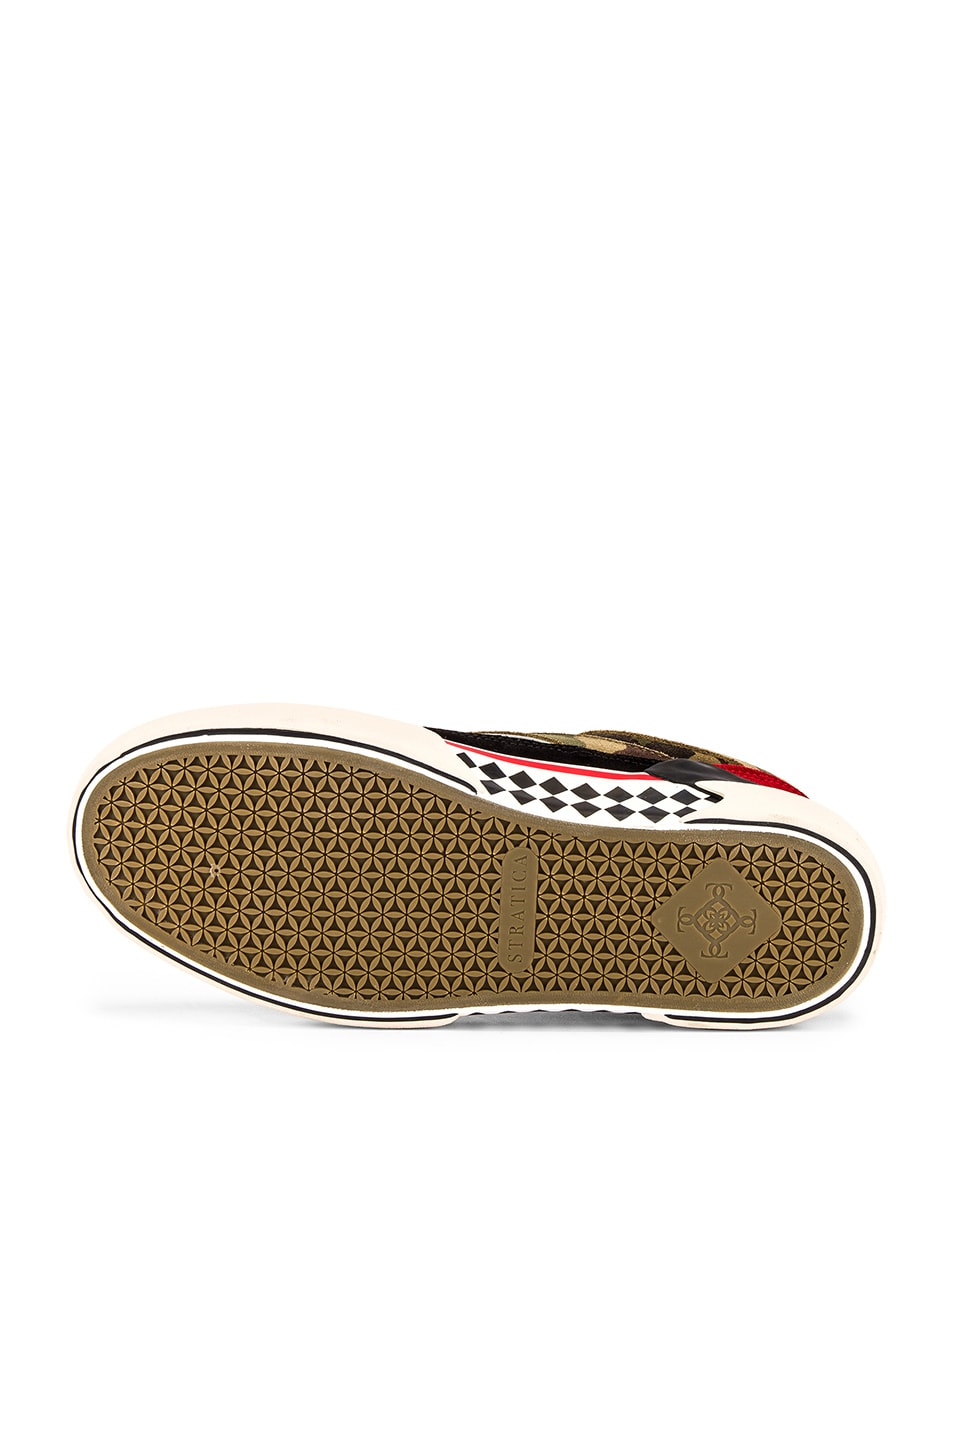 Image 6 of Stratica International Wilshire Deck Shoe in Multi